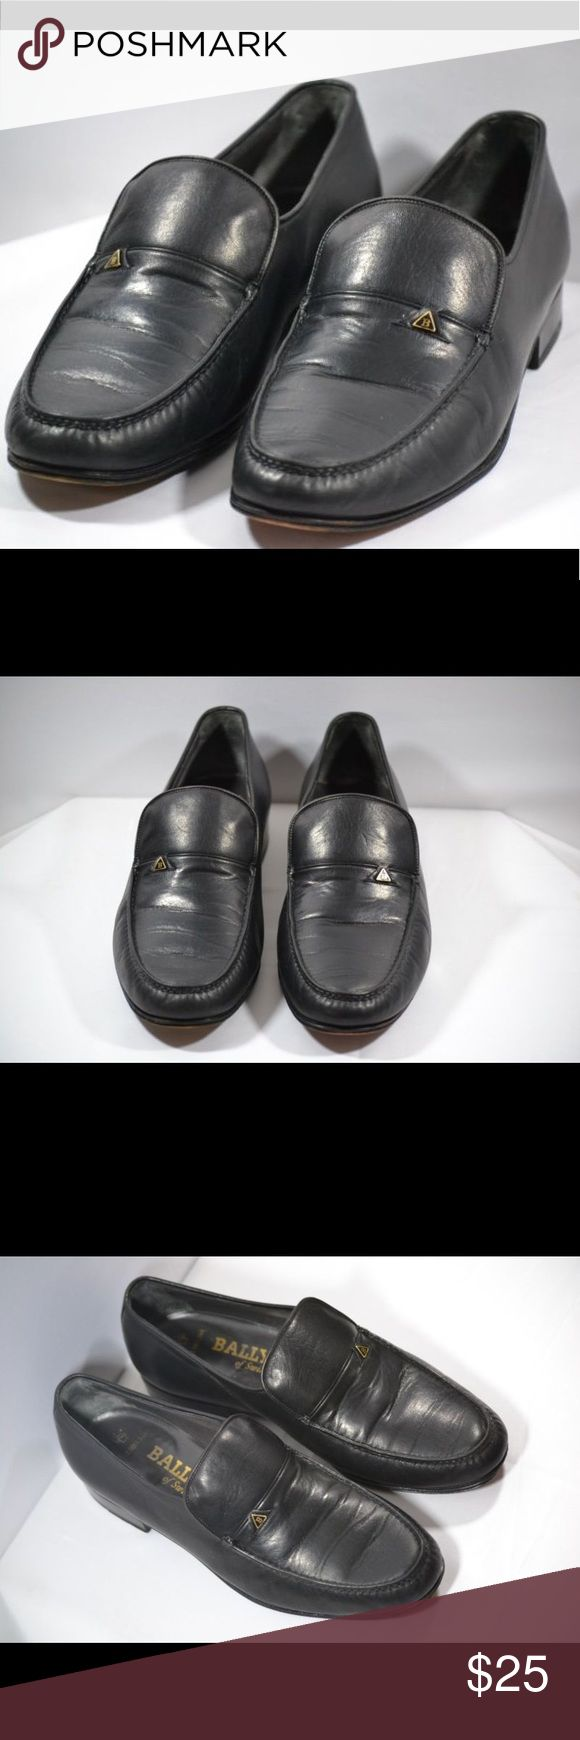 Bally of Switzerland Leather Loafers Size 9 Pair of Bally of Switzerland  Black Leather Signature Loafers Men's Shoes with a signature Bally metal tag. They are a US size 9 and show light overall wear with creases in leather and wear on the bottom. Thank you for looking. Bally Shoes Loafers & Slip-Ons